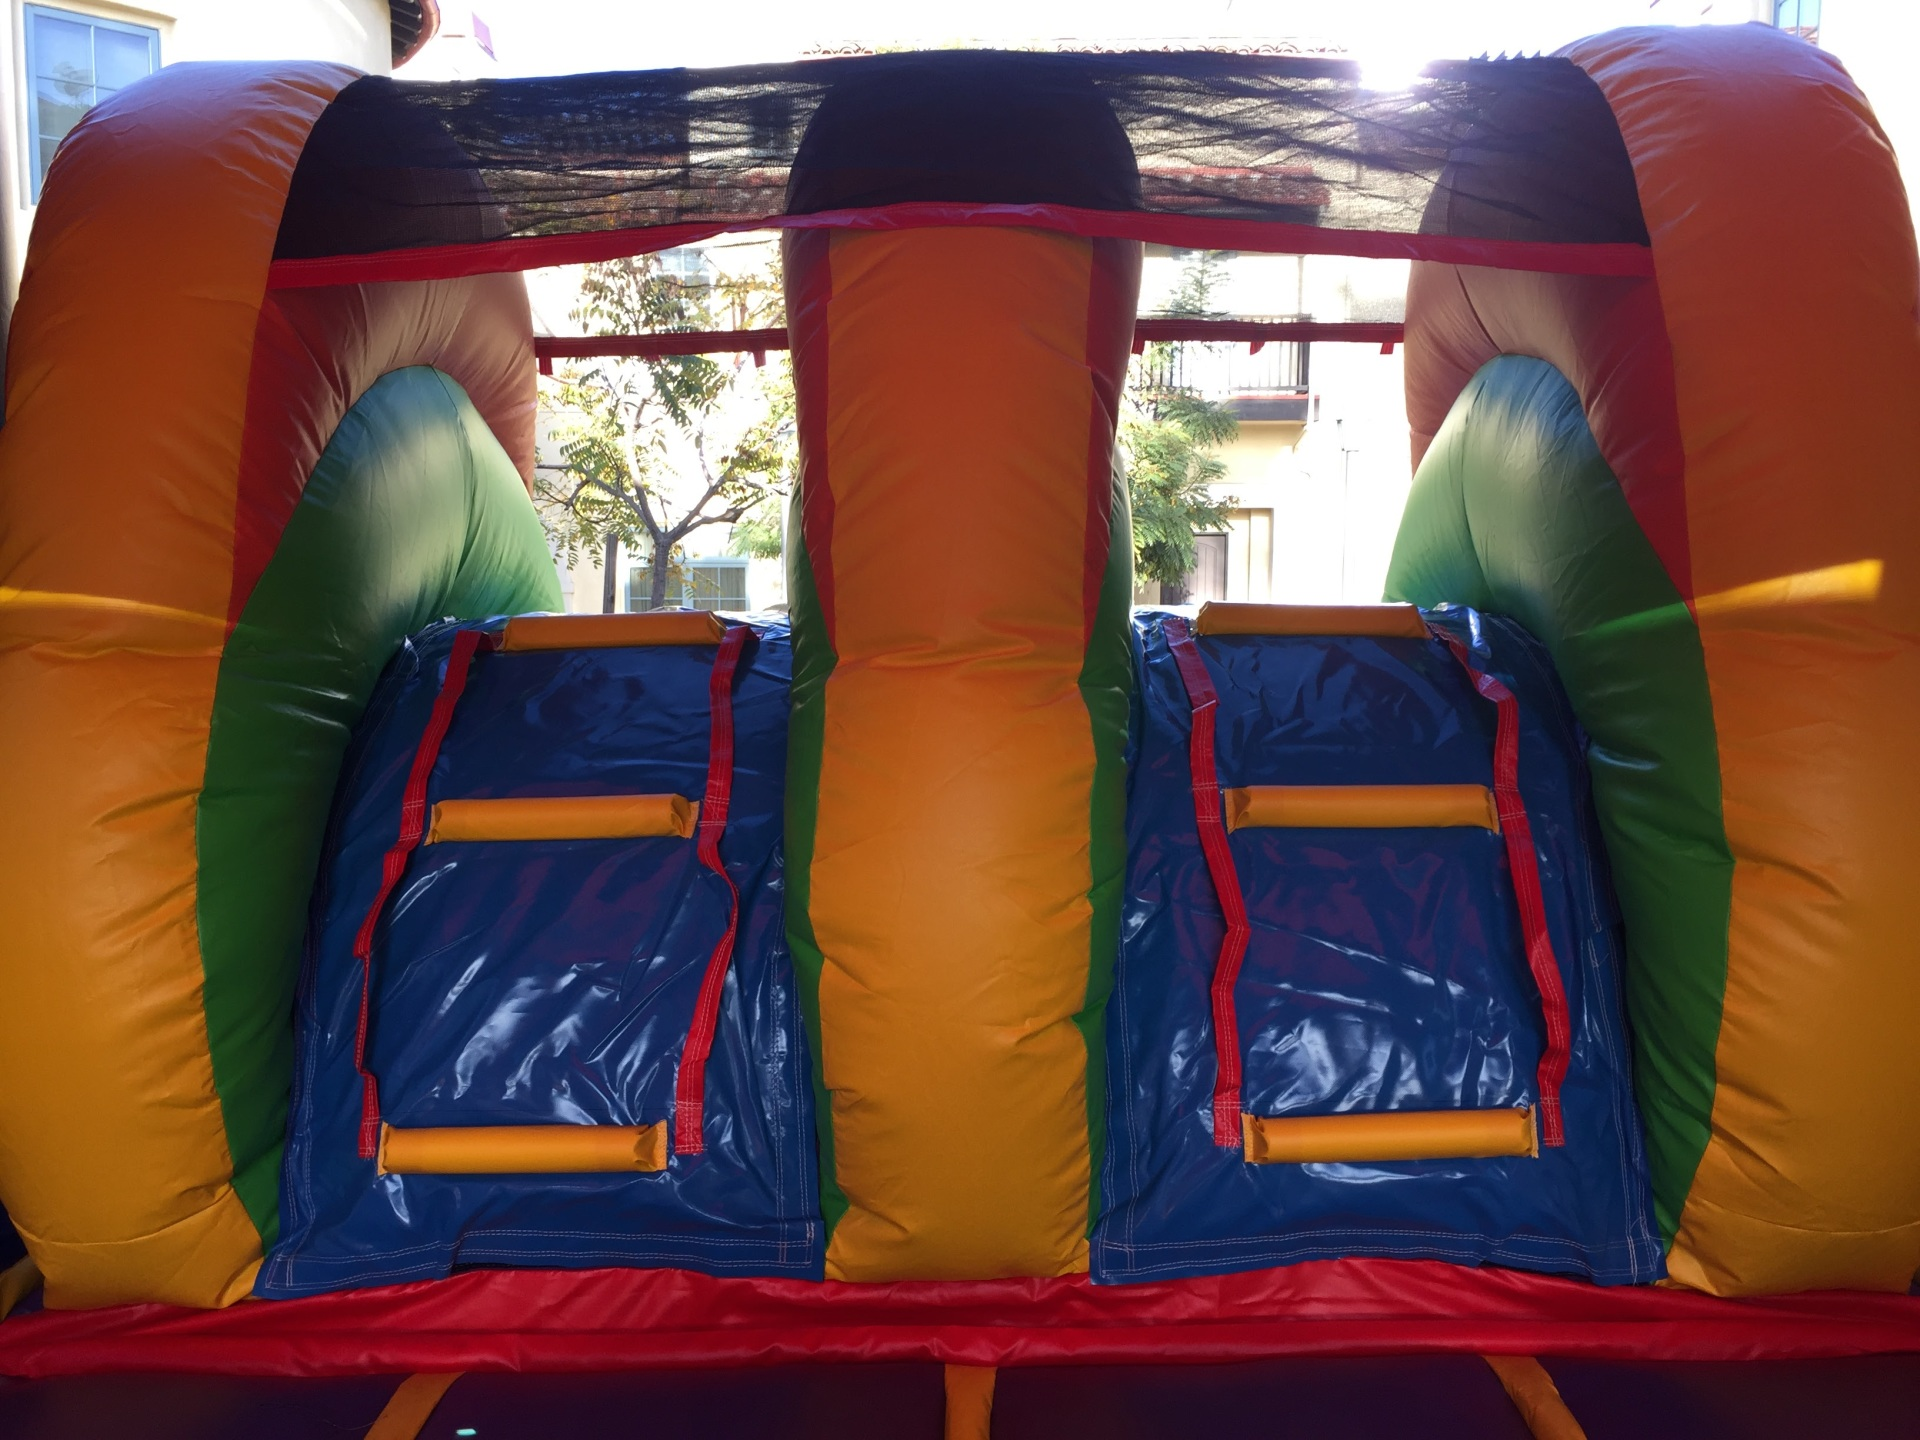 COMBO JUMPER, DOUBLE SLIDE COMBO JUMPER FOR RENT, JUMPER WITH SLIDE FOR RENT, JUMPER FOR RENT, DOUBLE SLIDE COMBO JUMPER FOR RENT, DOUBLE WATERSLIDE JUMPER FOR RENT, WATERSLIDE